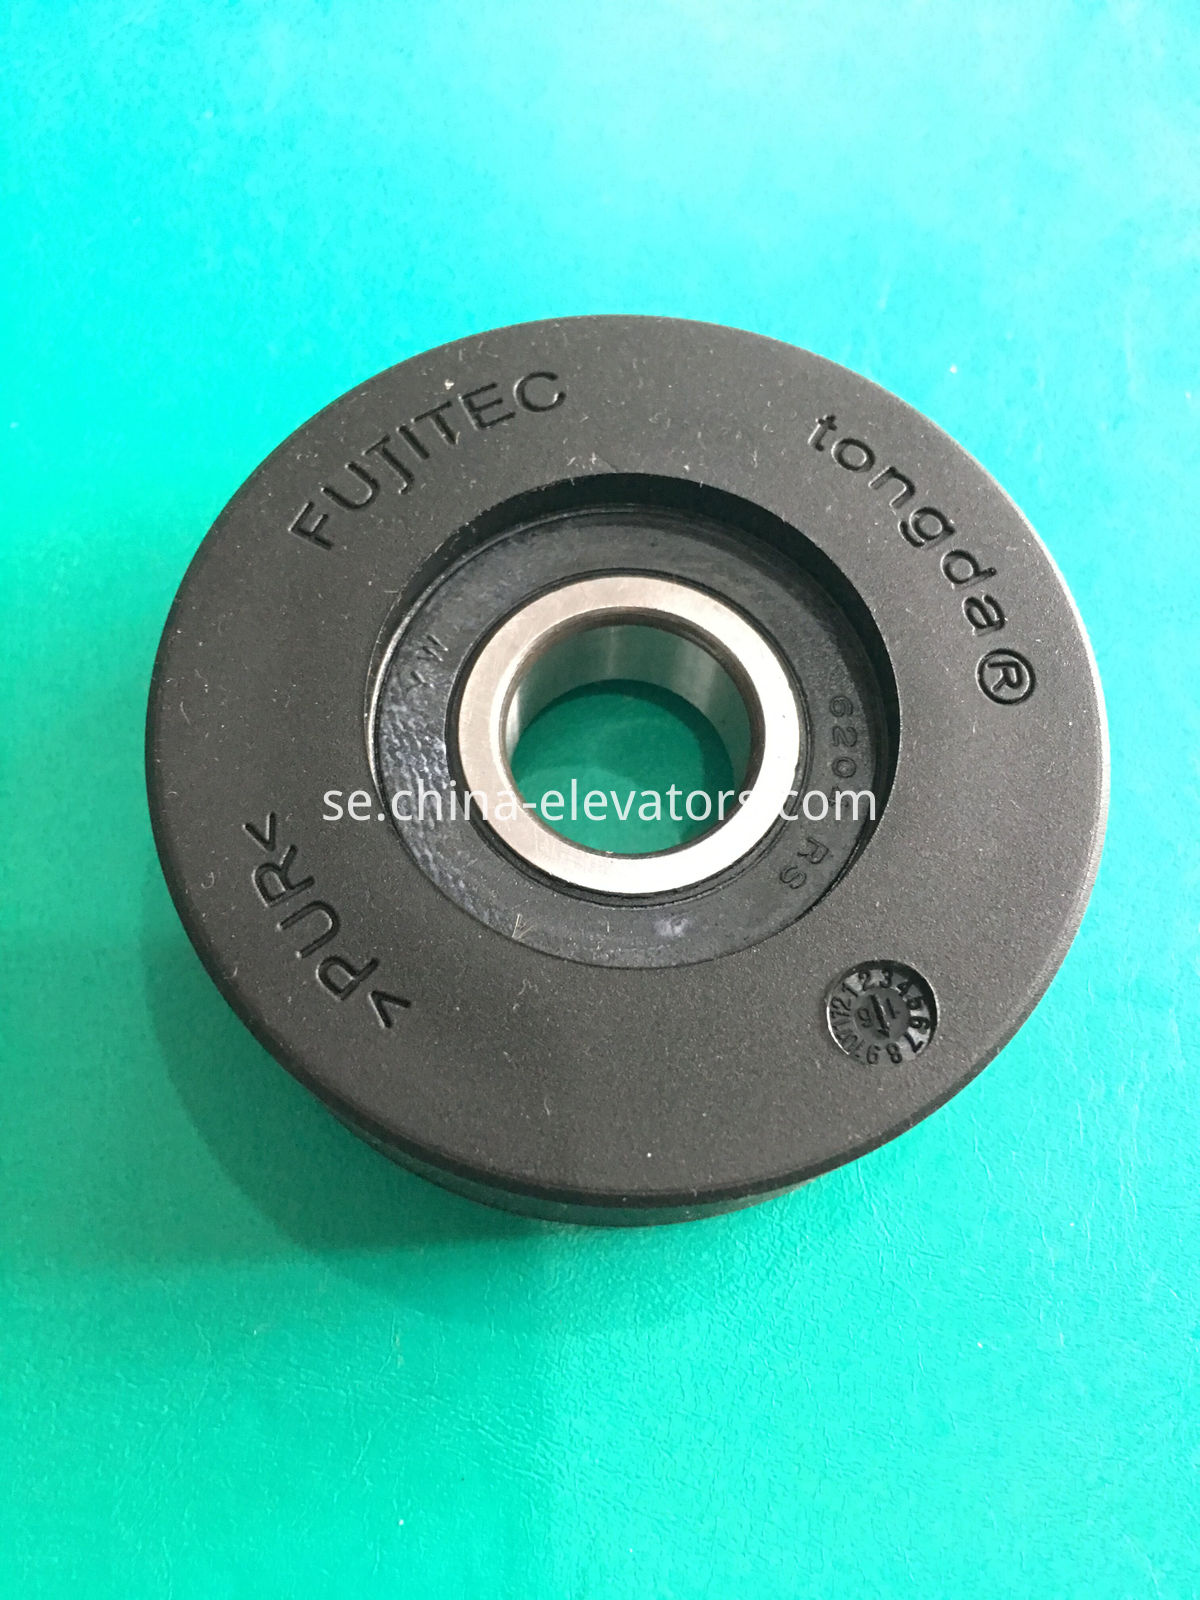 Fujitec Escalator Step Roller 75X23.5X6204